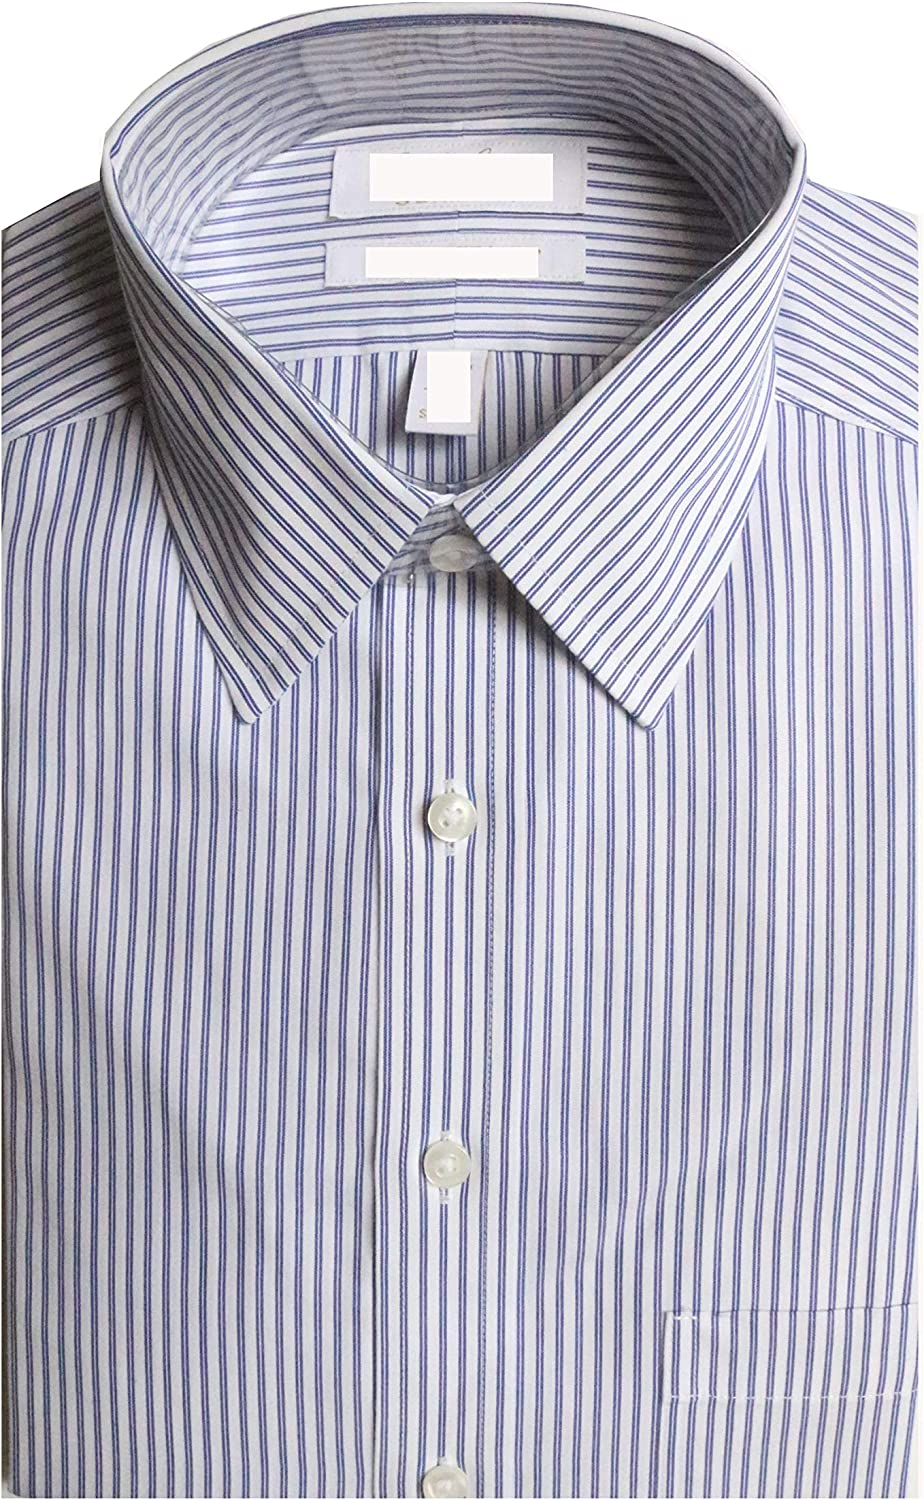 Gold Label Roundtree & Yorke Non-Iron Slim Fit Point Collar Stripe Dress Shirt G16A0106 Navy